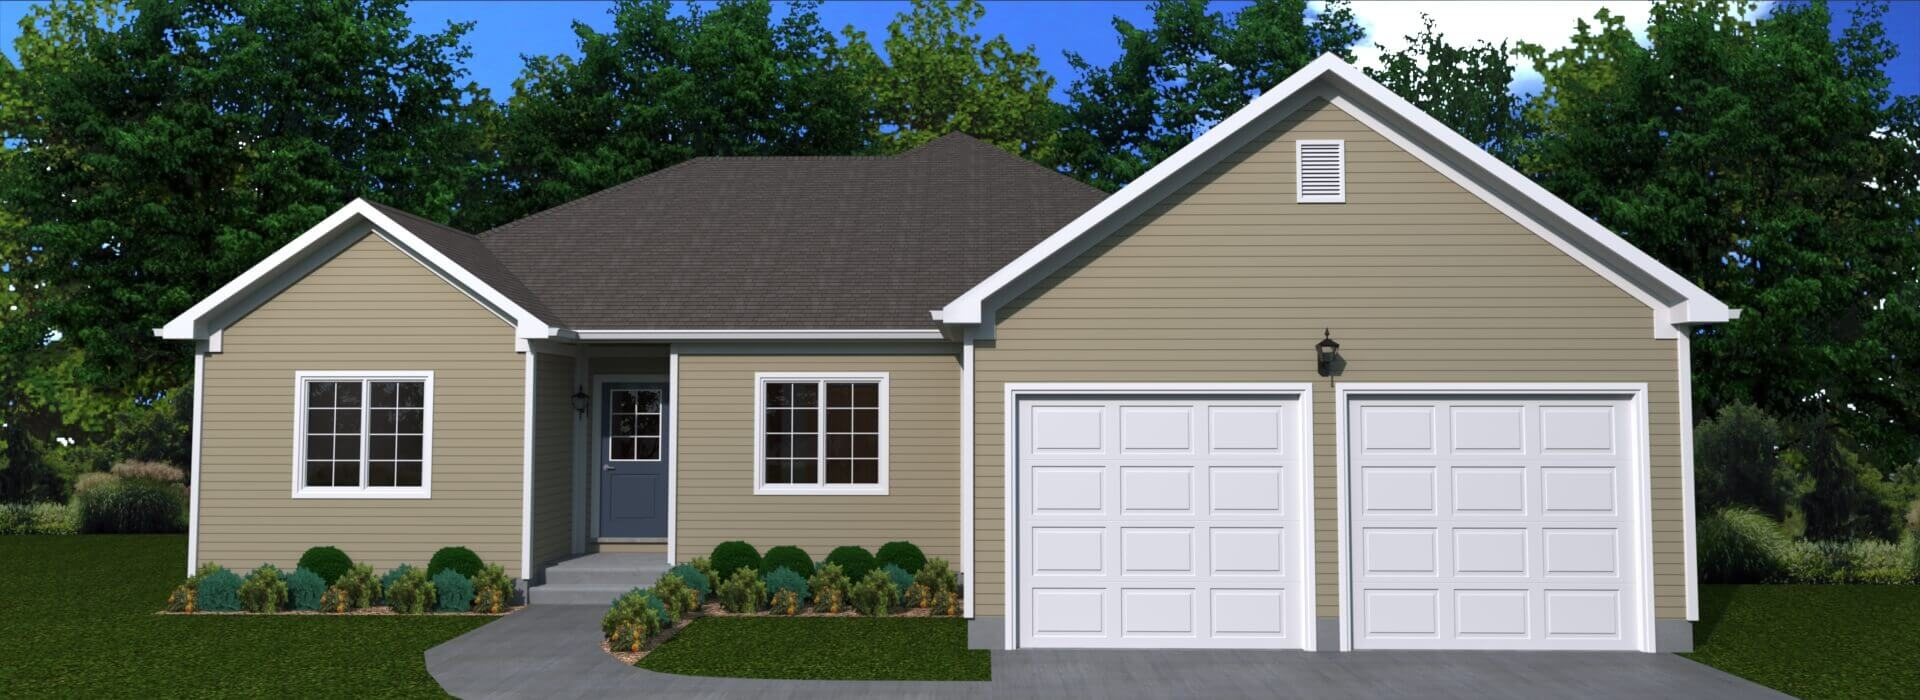 1758 sq.ft. timber mart house 3 bed 2.5 bath exterior render